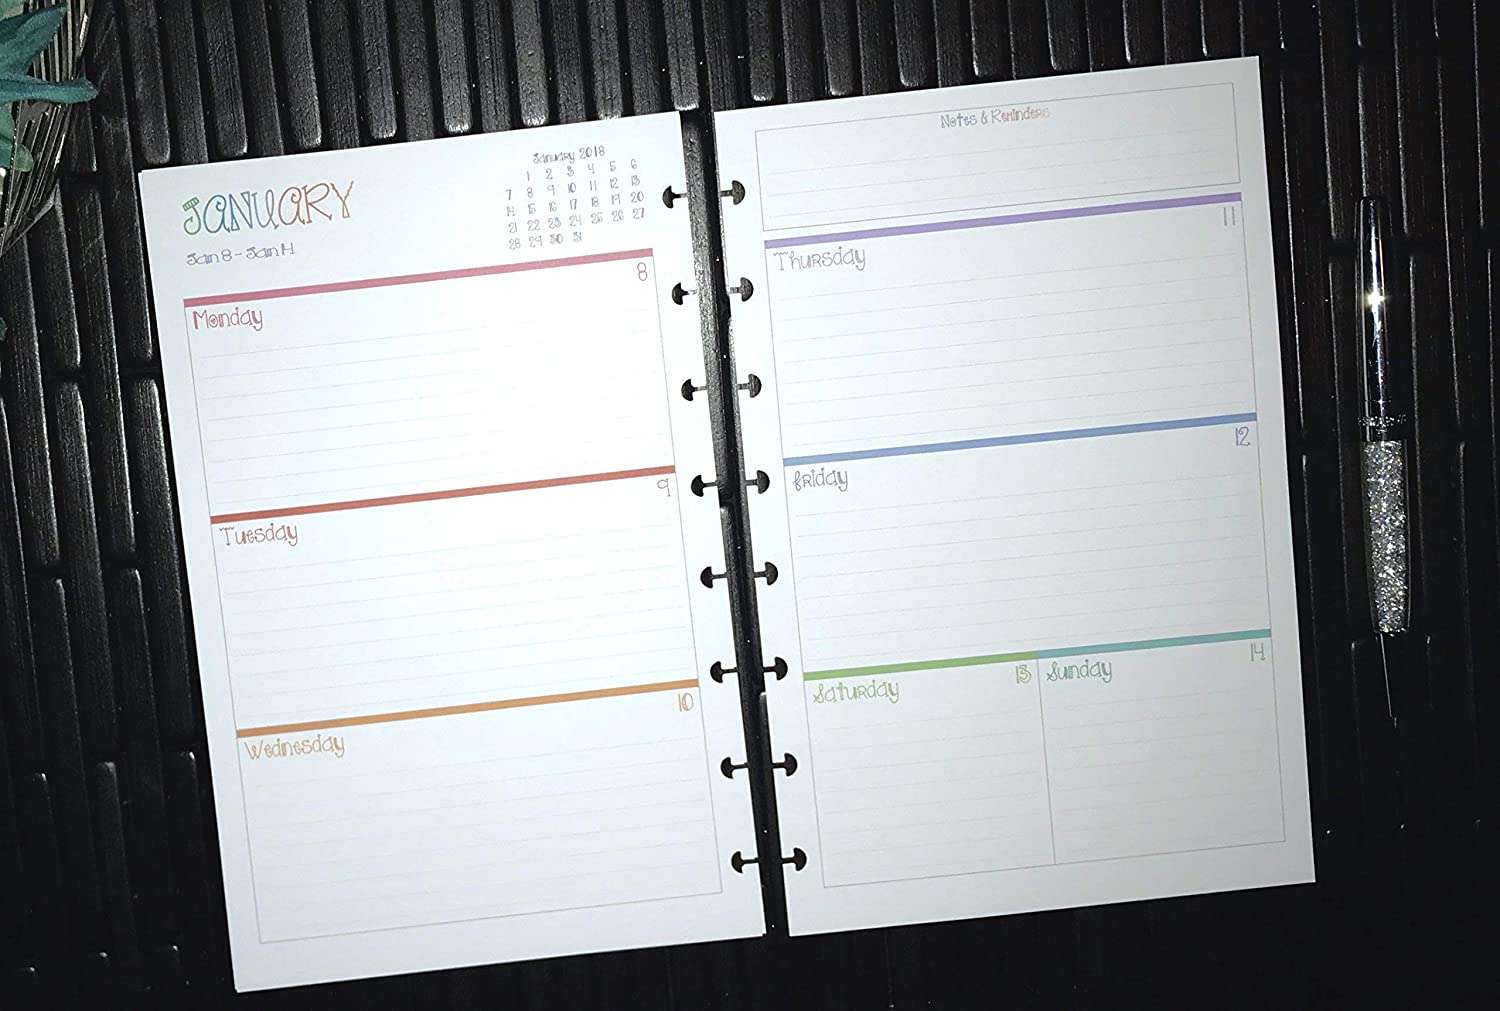 Staples Calendar 2022.Stationery Martha Stewart And All Half Letter Size 5 5 X 8 5 Tul 2019 2020 2021 2022 Daily Calendar For Discbound Planners Planner Inserts Only Arc Jr By Staples Fits Circa Junior Appointment Books Planners